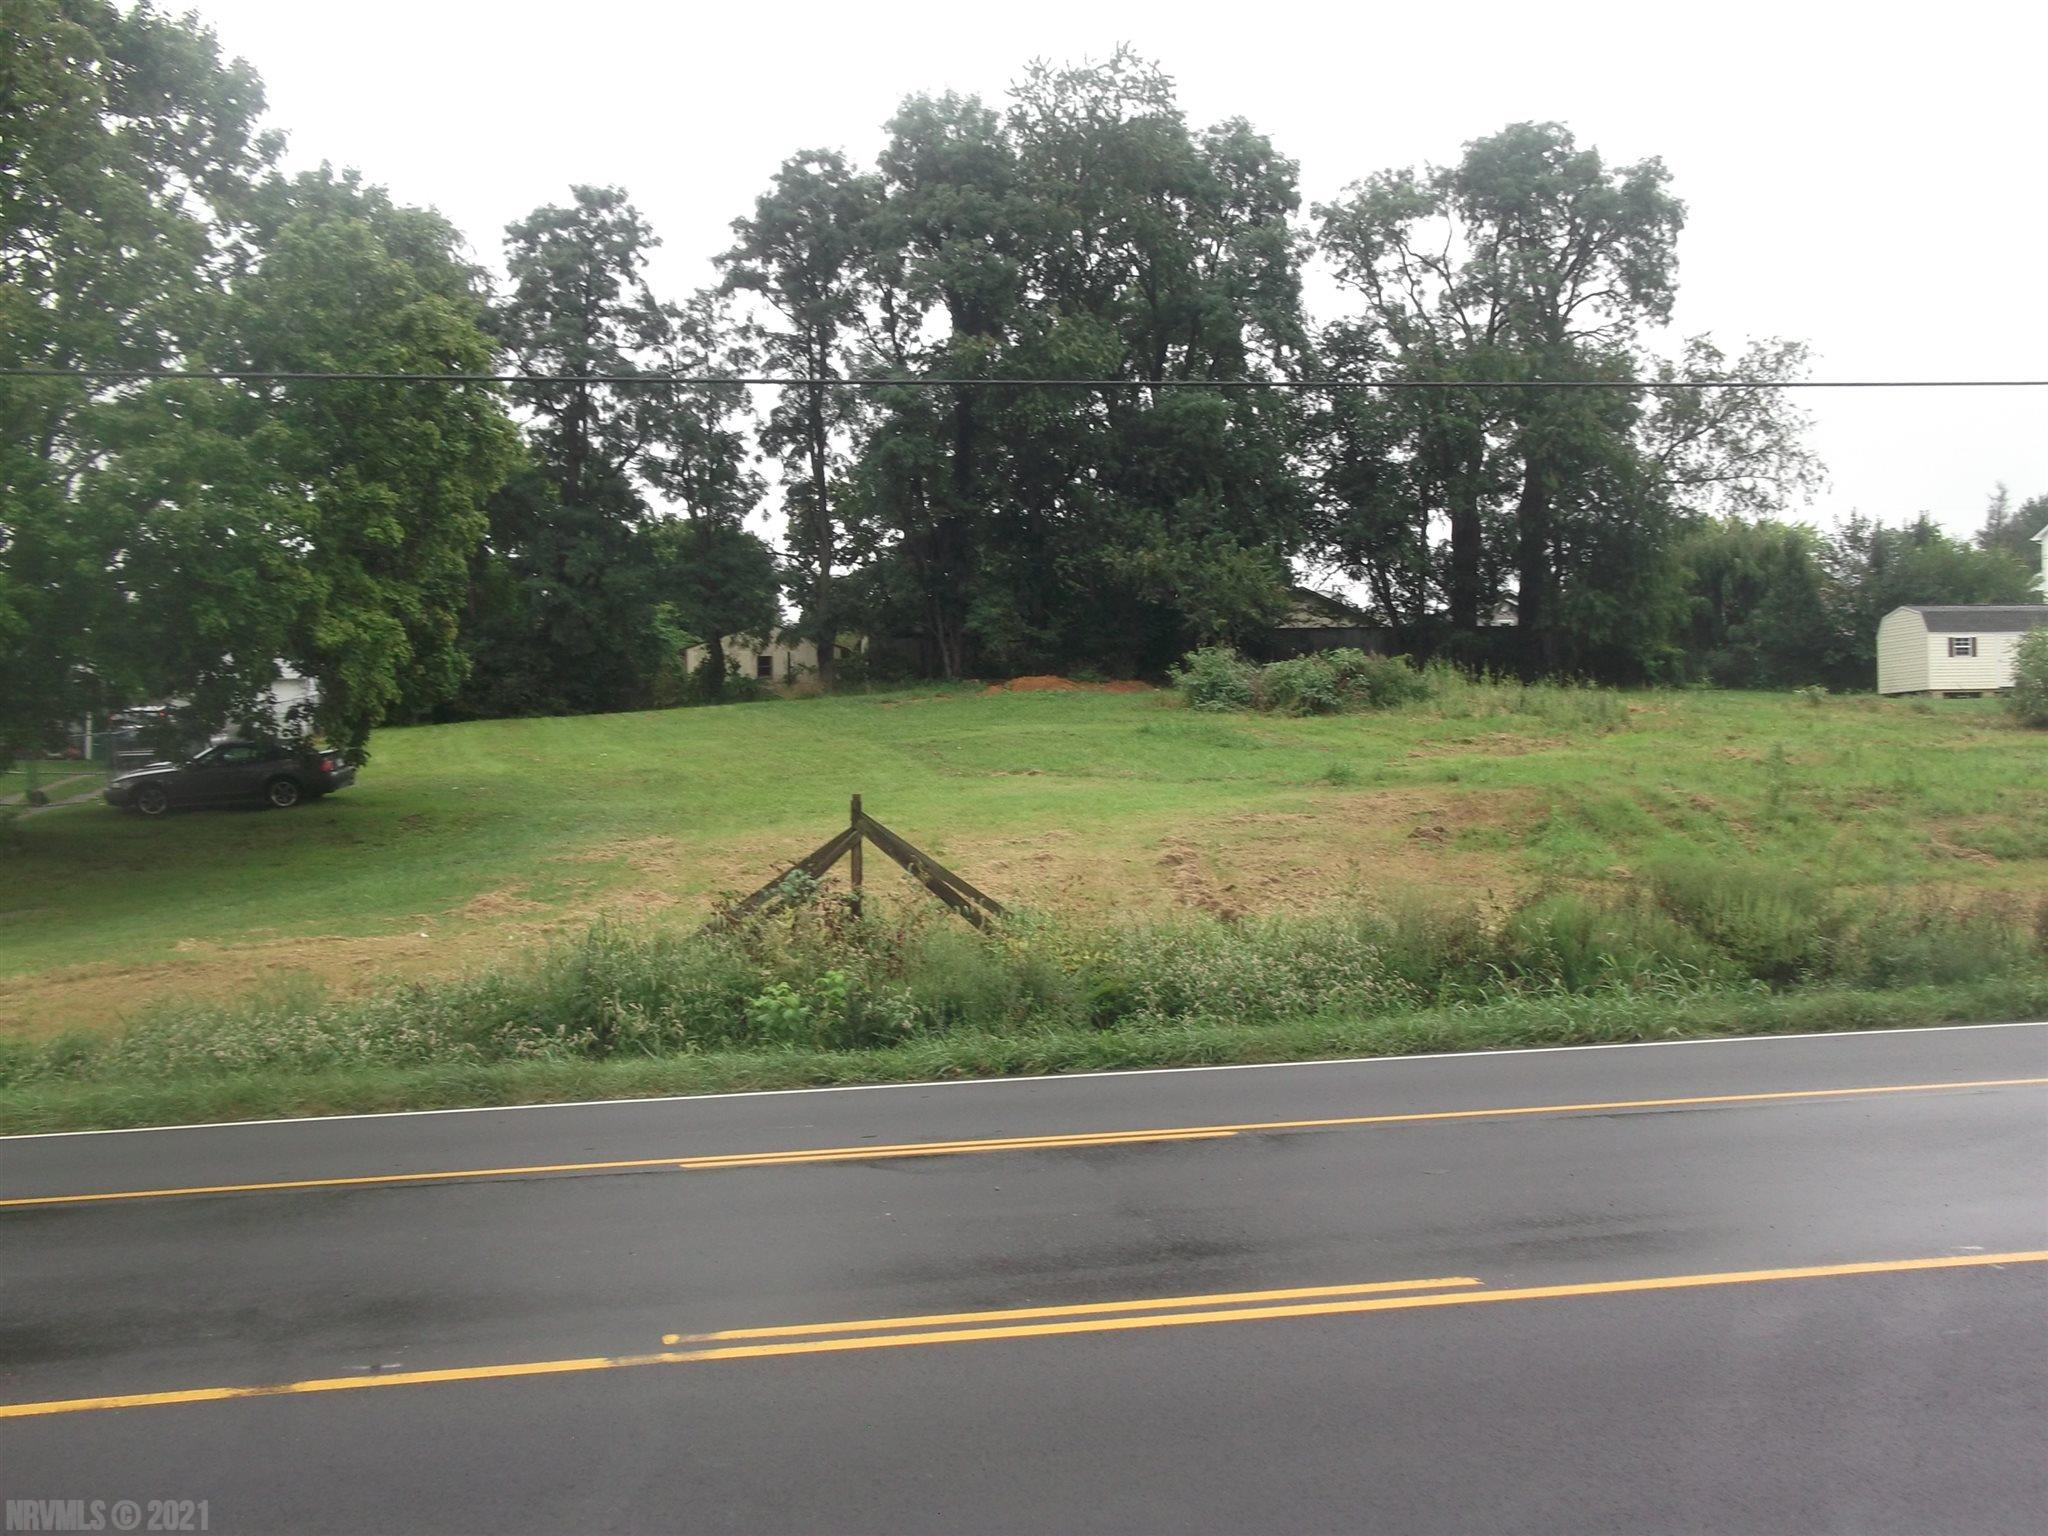 Prime location for this commercial lot along a main road.  Land lays well with a slight rise from the road.  Best use may be residential which requires a cup.